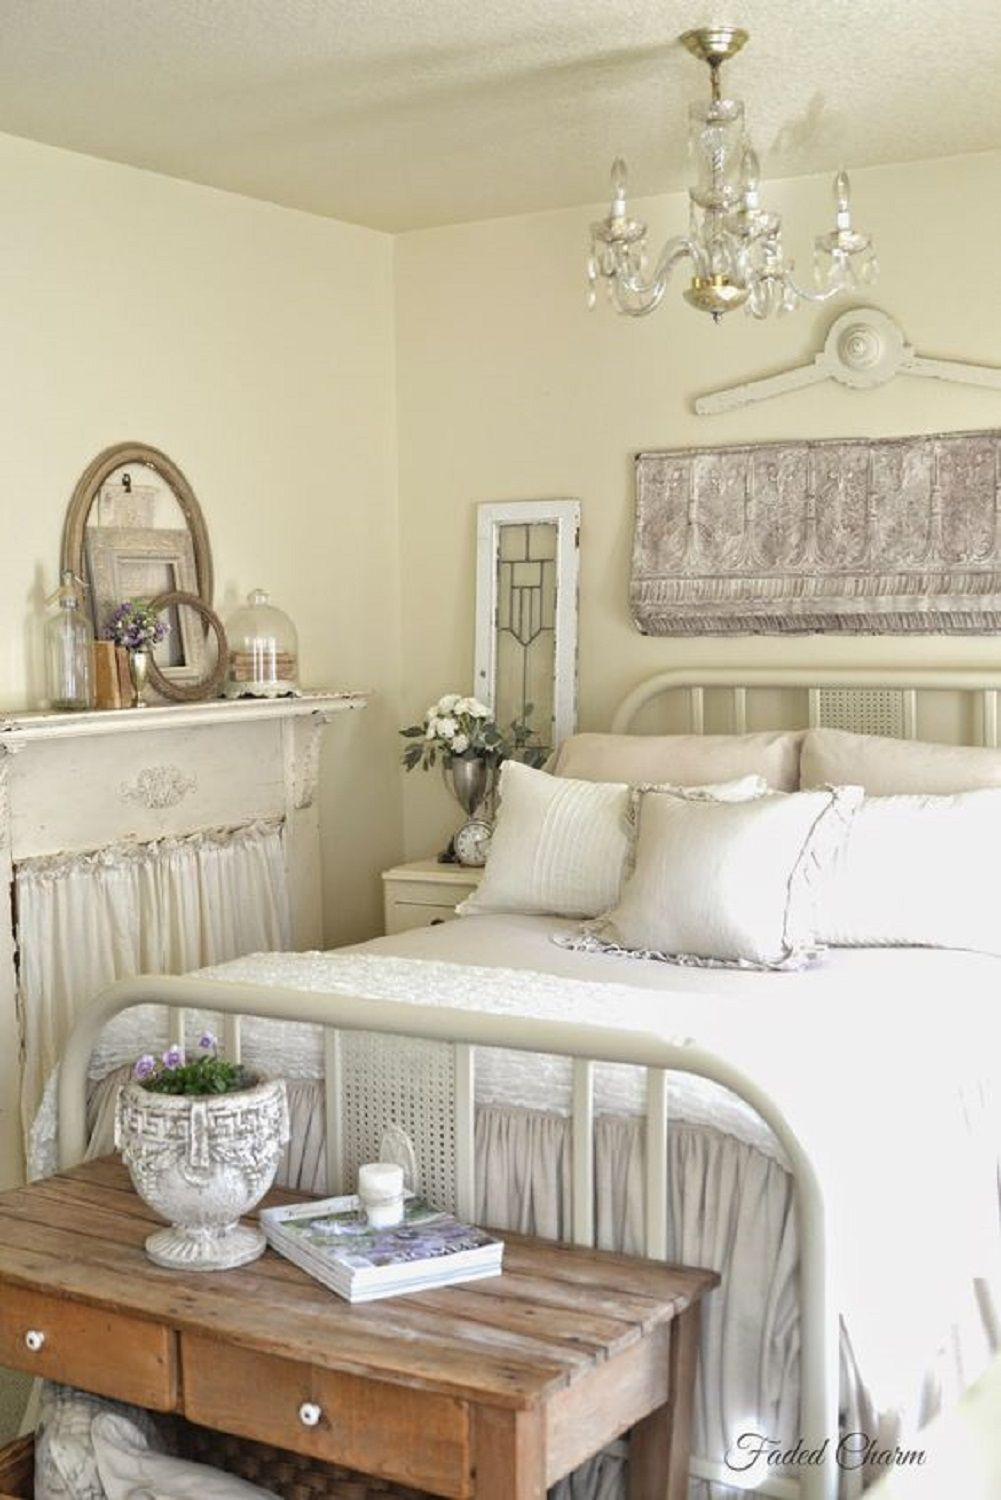 inspiring country chic bedroom decorating ideas | French Country Bedroom Decorating Ideas and Photos